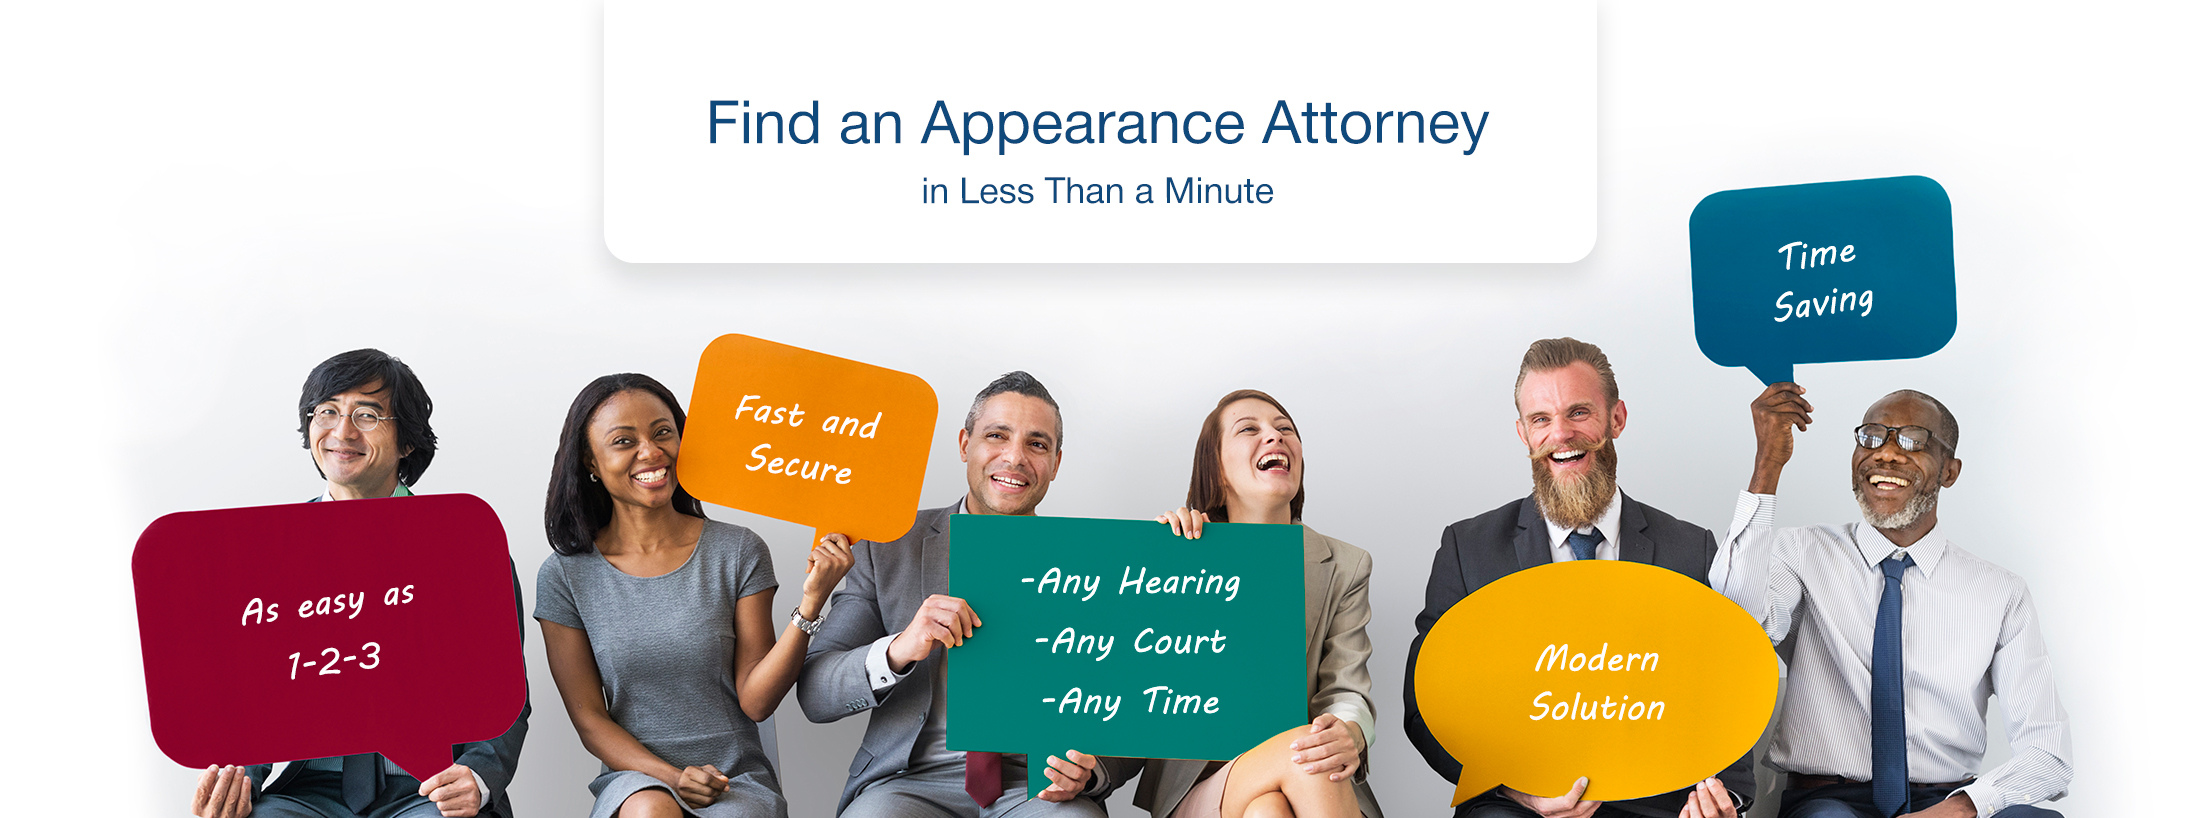 Find an Appearance attorney